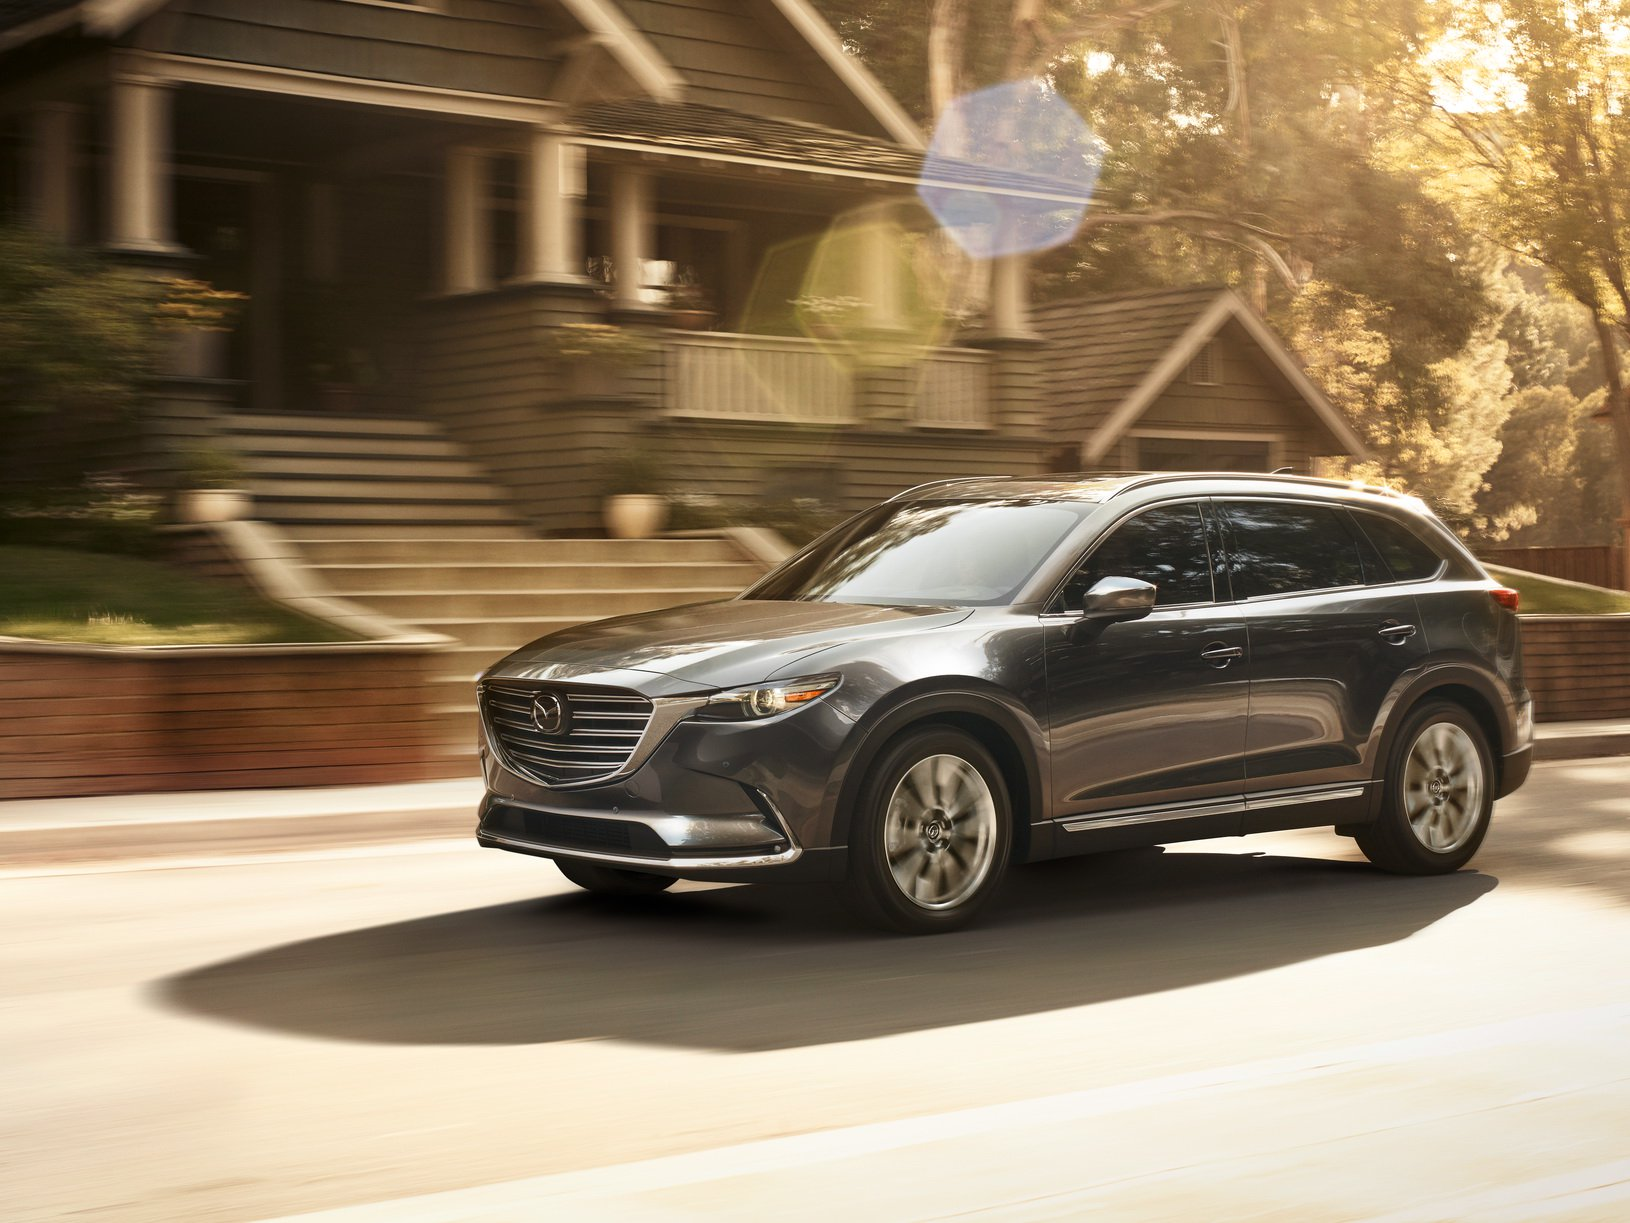 2019 mazda cx 9 gets apple carplay android auto and. Black Bedroom Furniture Sets. Home Design Ideas